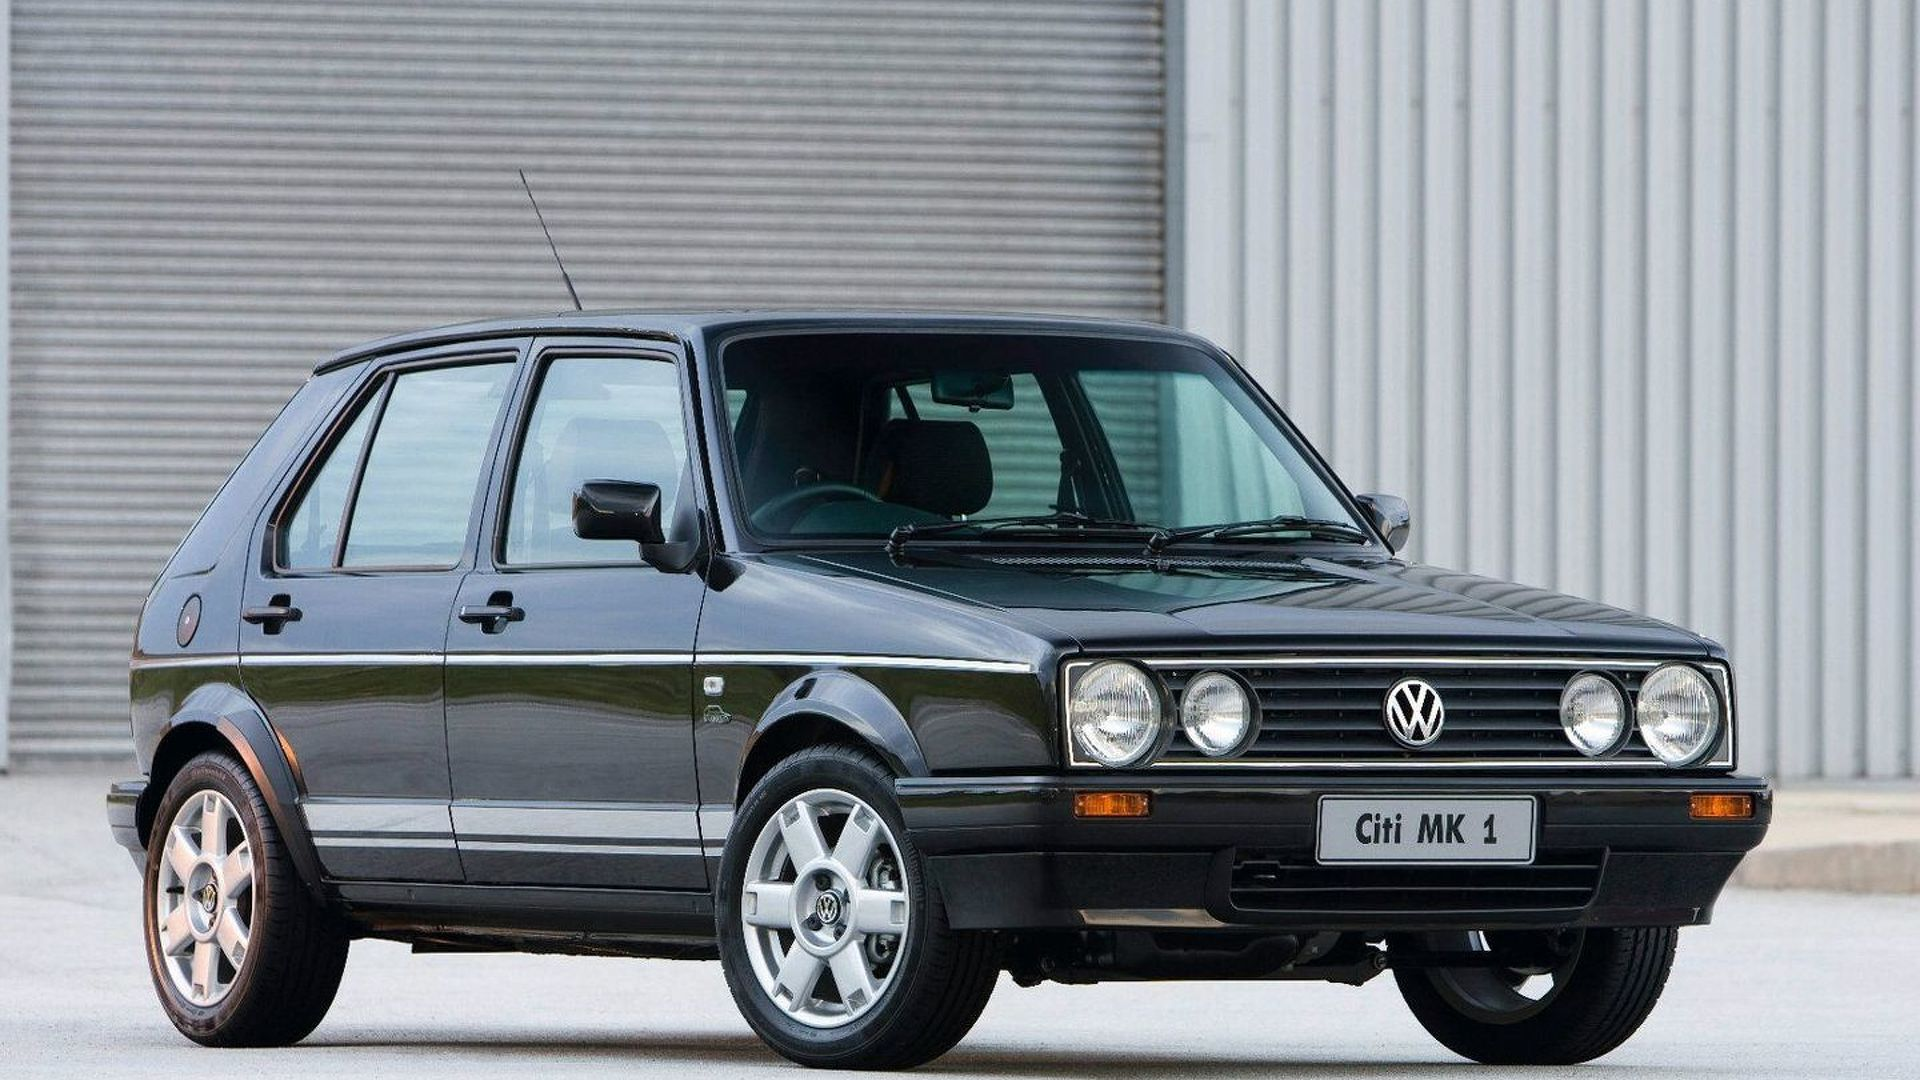 VW Ends Golf I Production in South Africa with Citi Golf Mk1 Limited Edition